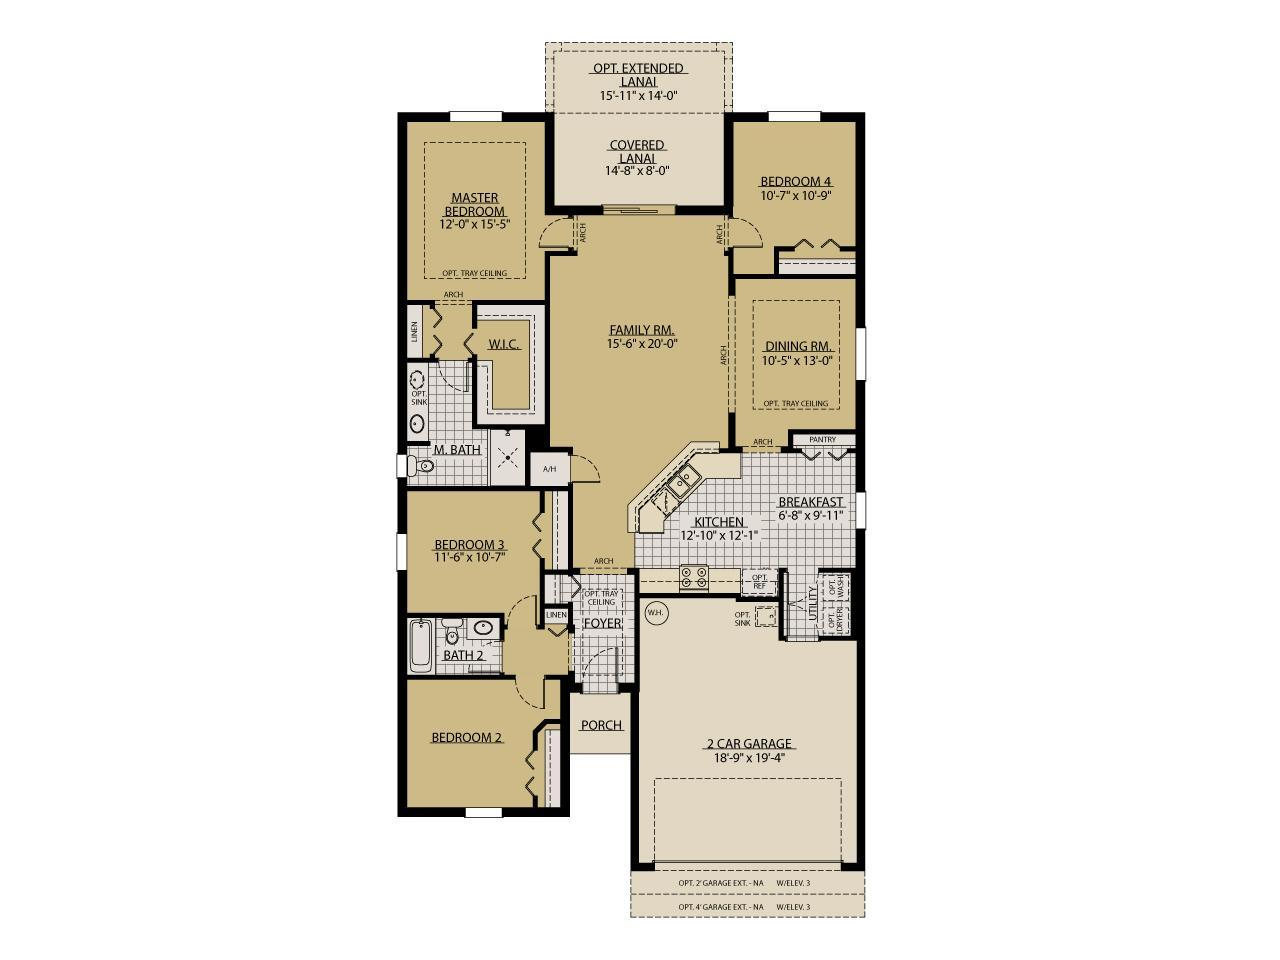 Car Garage Floor Plan: Sweetwater 3-Car Garage